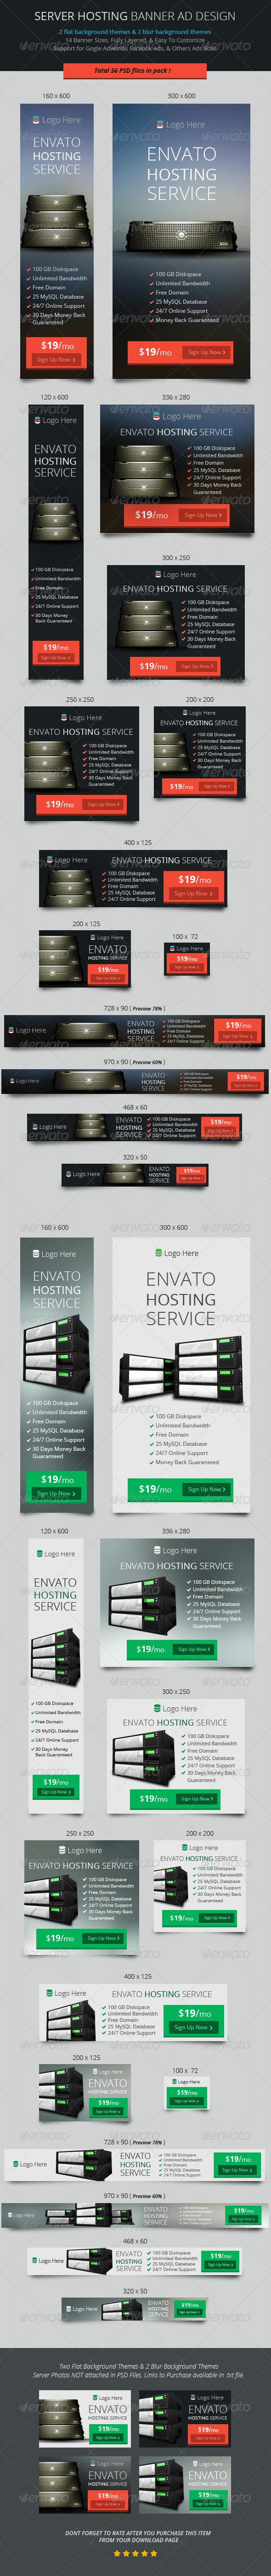 Server Hosting Banner ad Design - Banners & Ads Web Elements